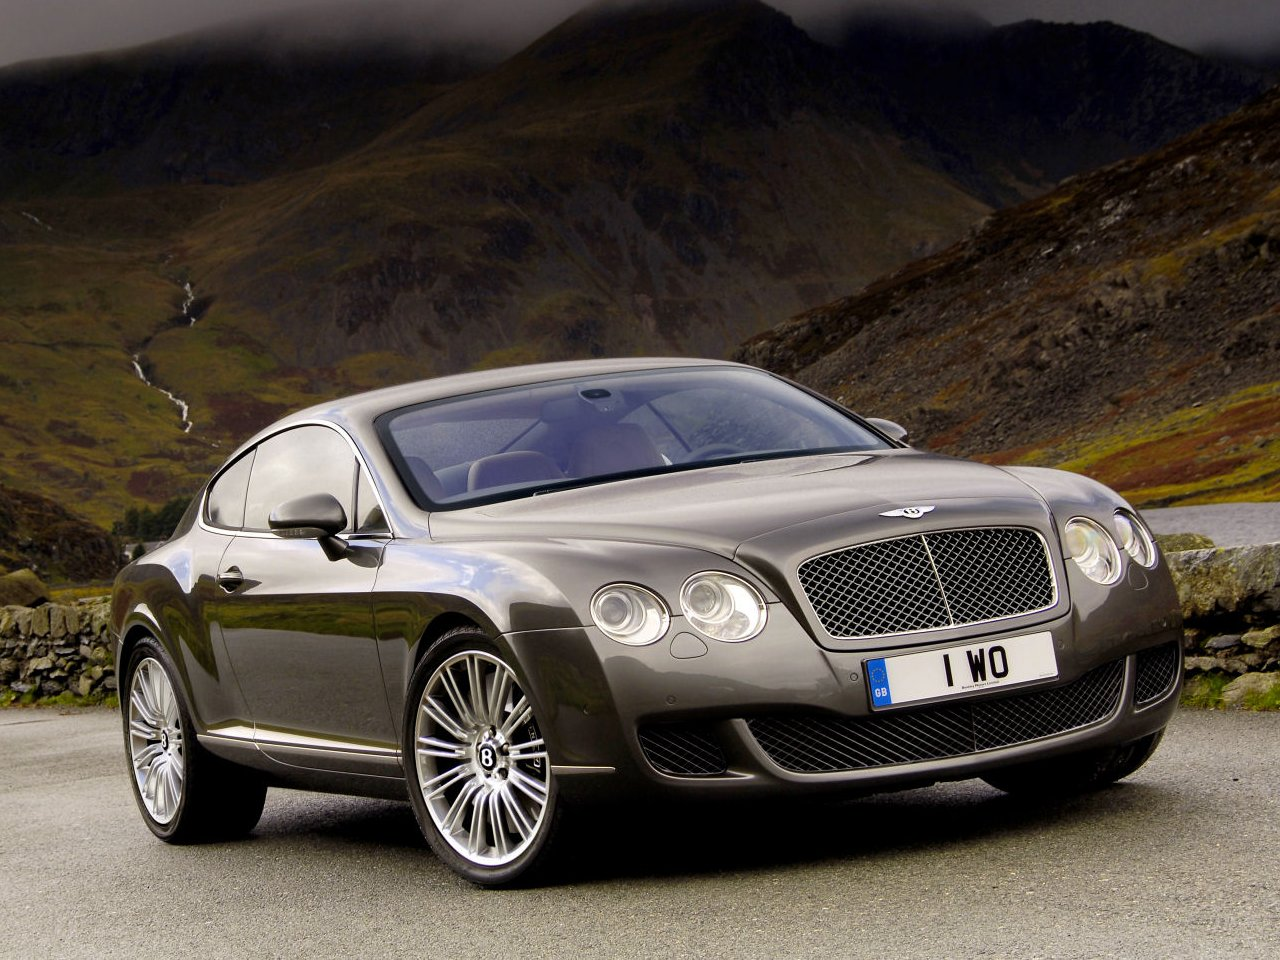 Speedo car wallpapers bentley continental gt new cars car reviews car pictures and auto